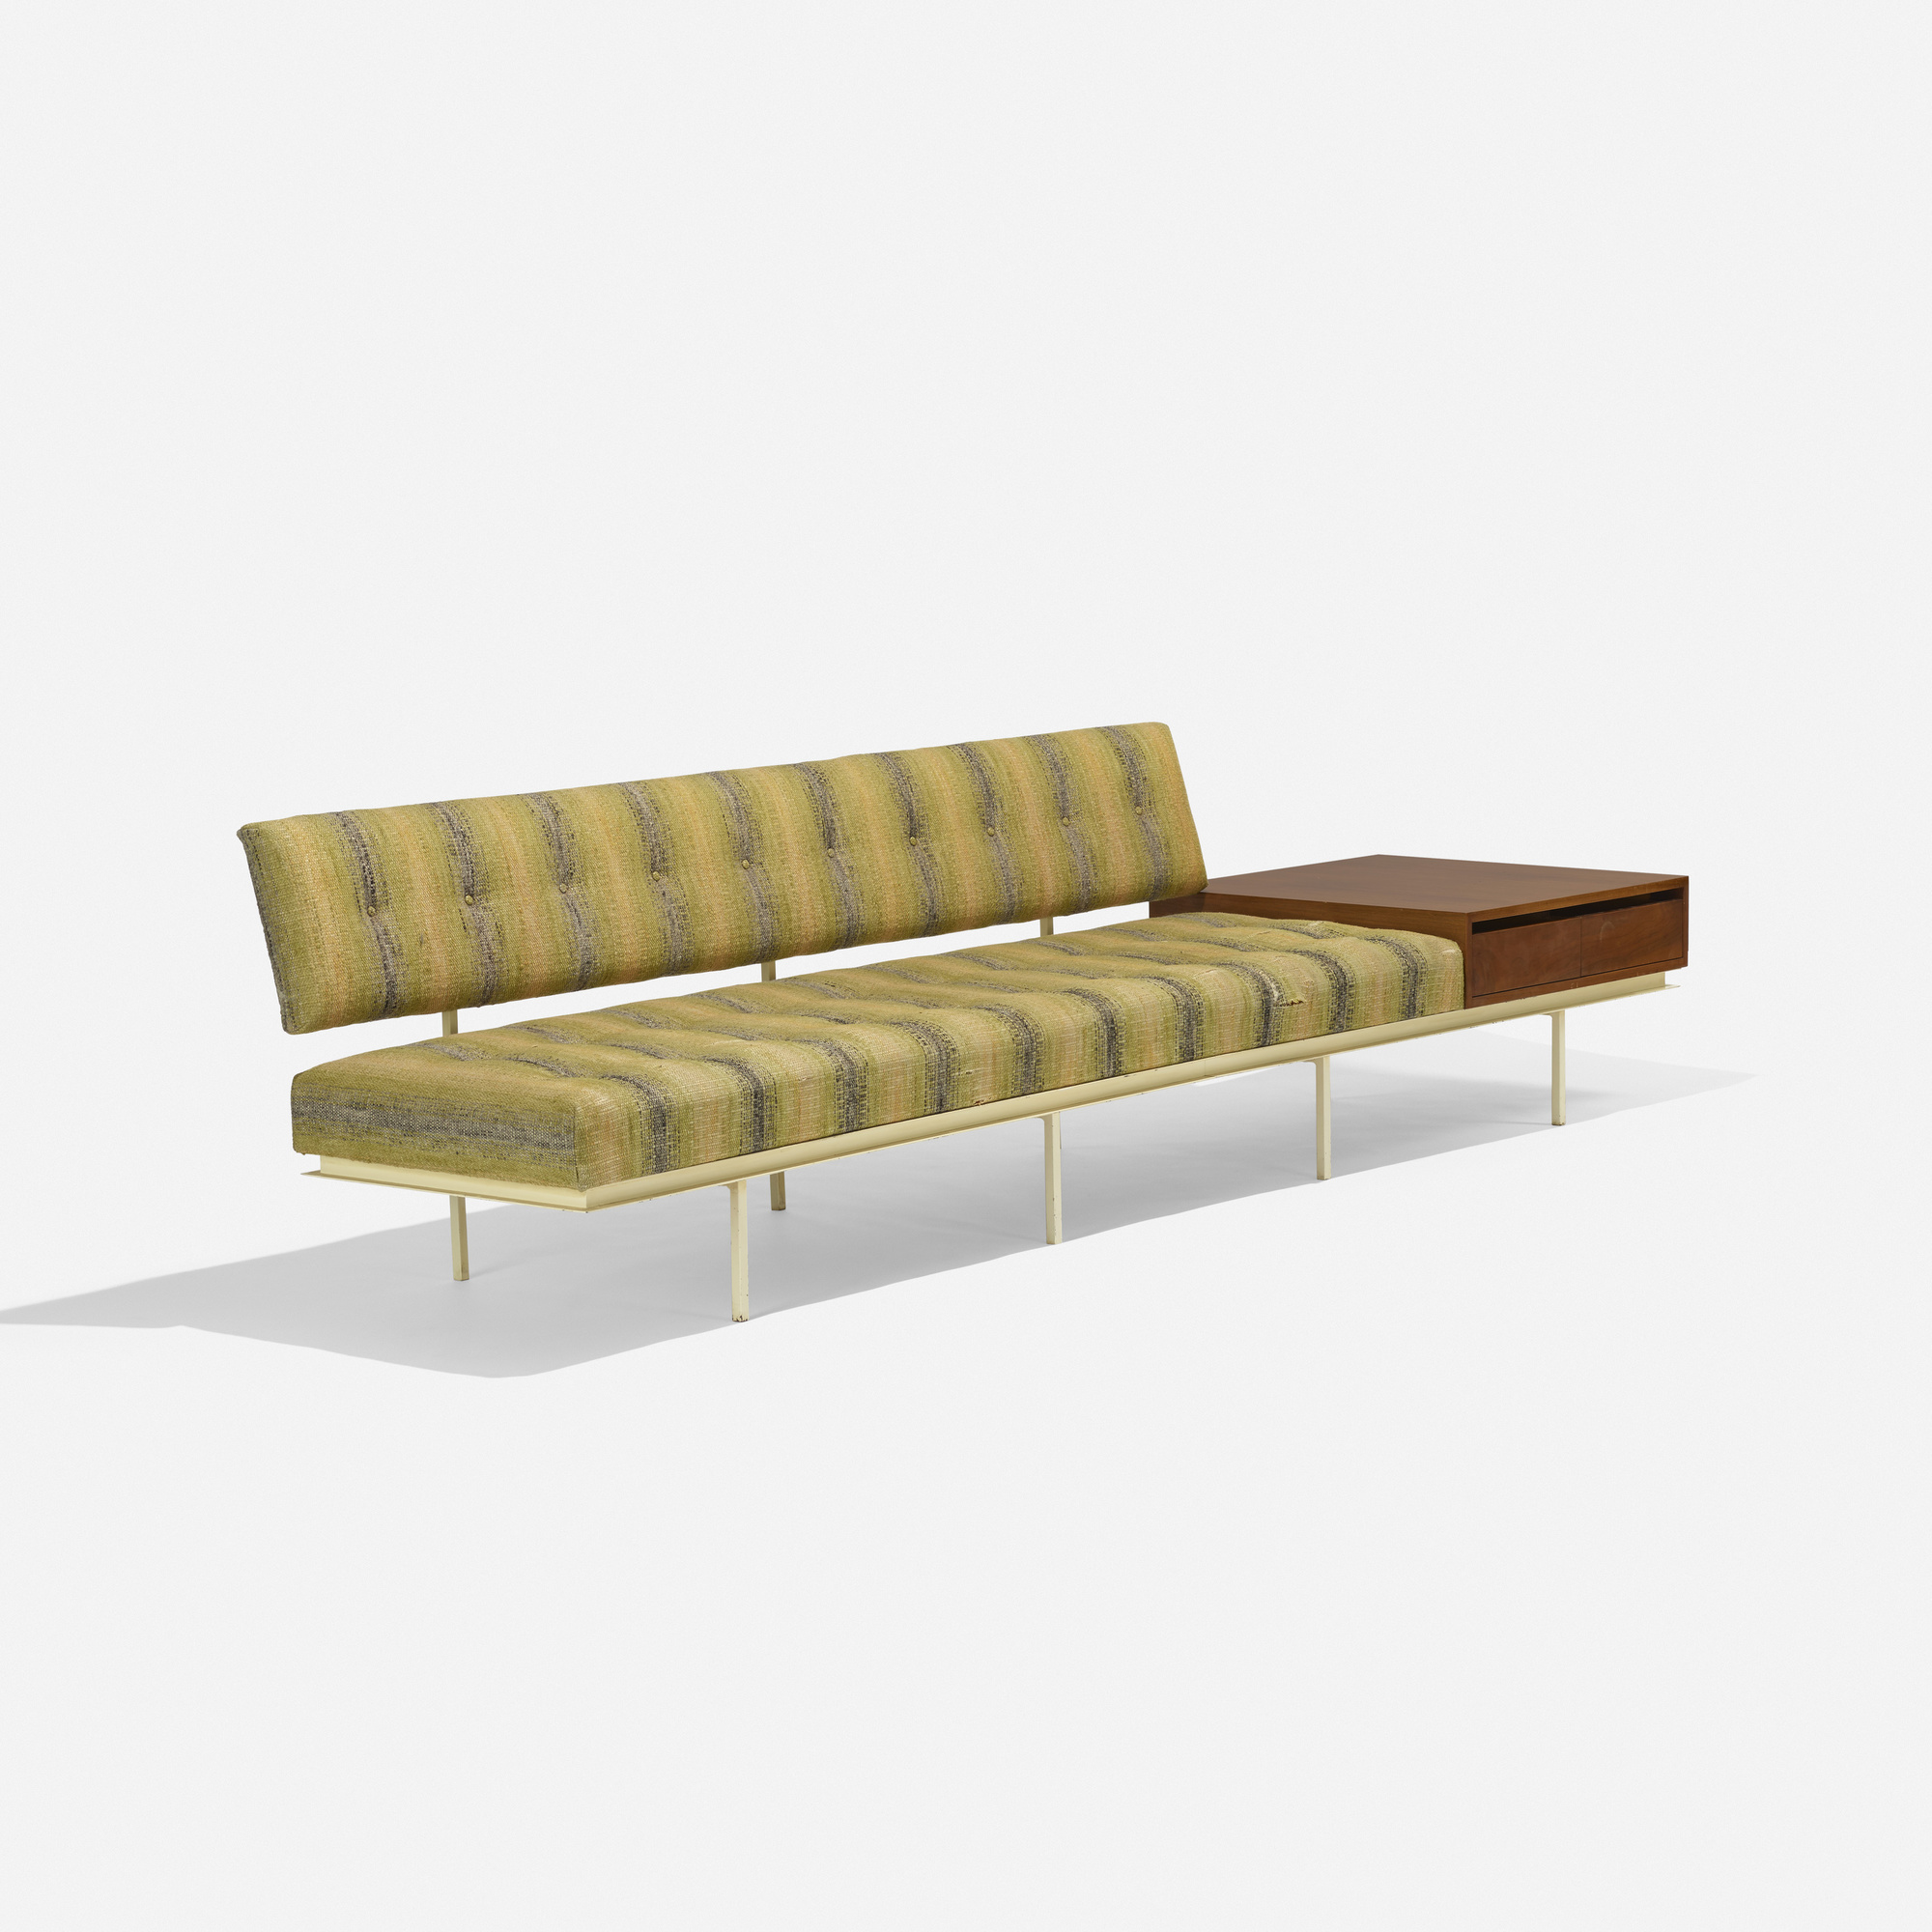 Etonnant 109: Florence Knoll / Sofa With Attached Table (1 Of 1)